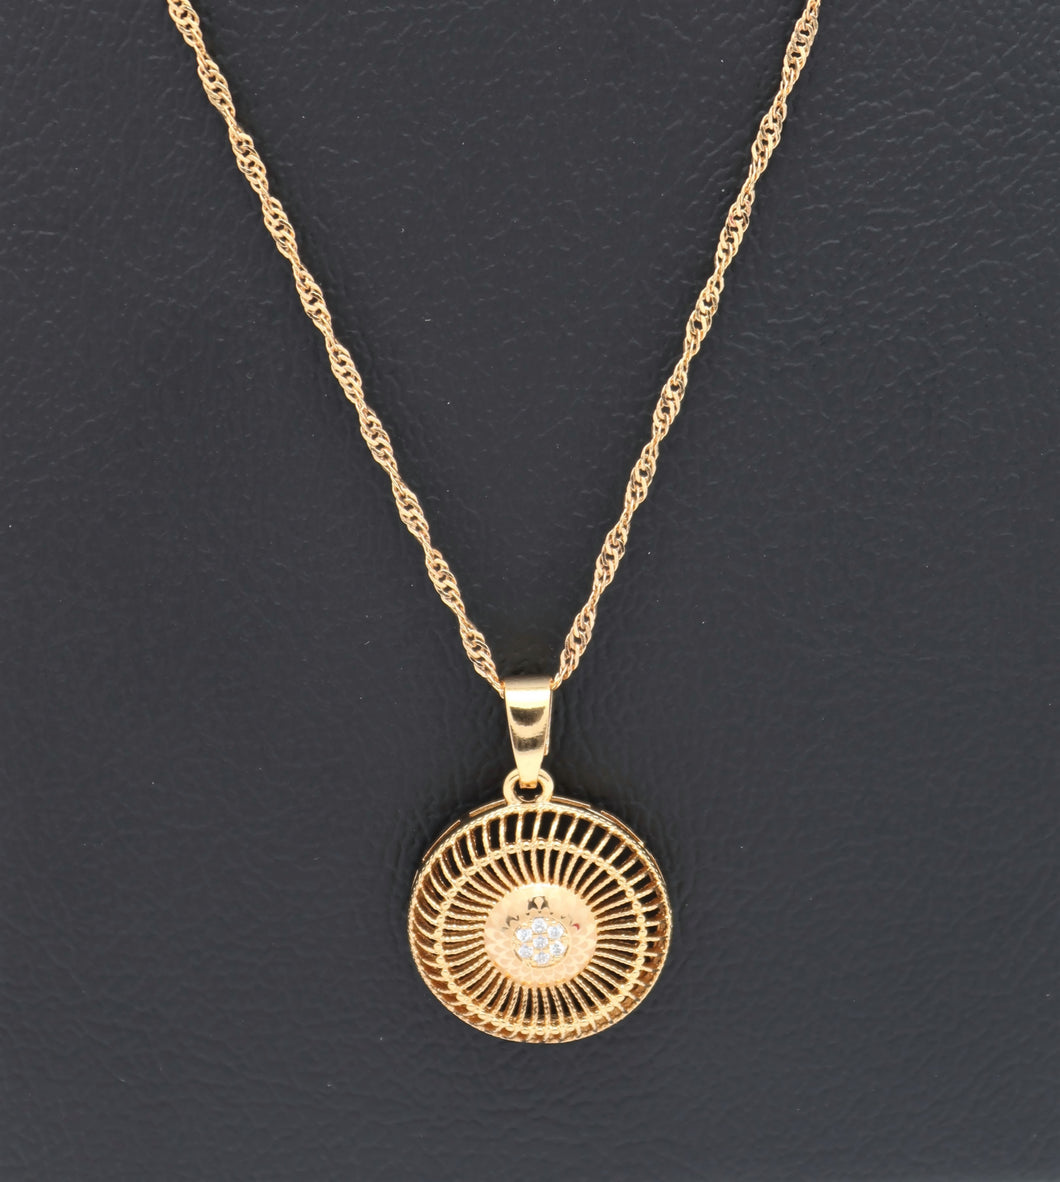 18kt Pendant Necklace - Exclusives Collection series